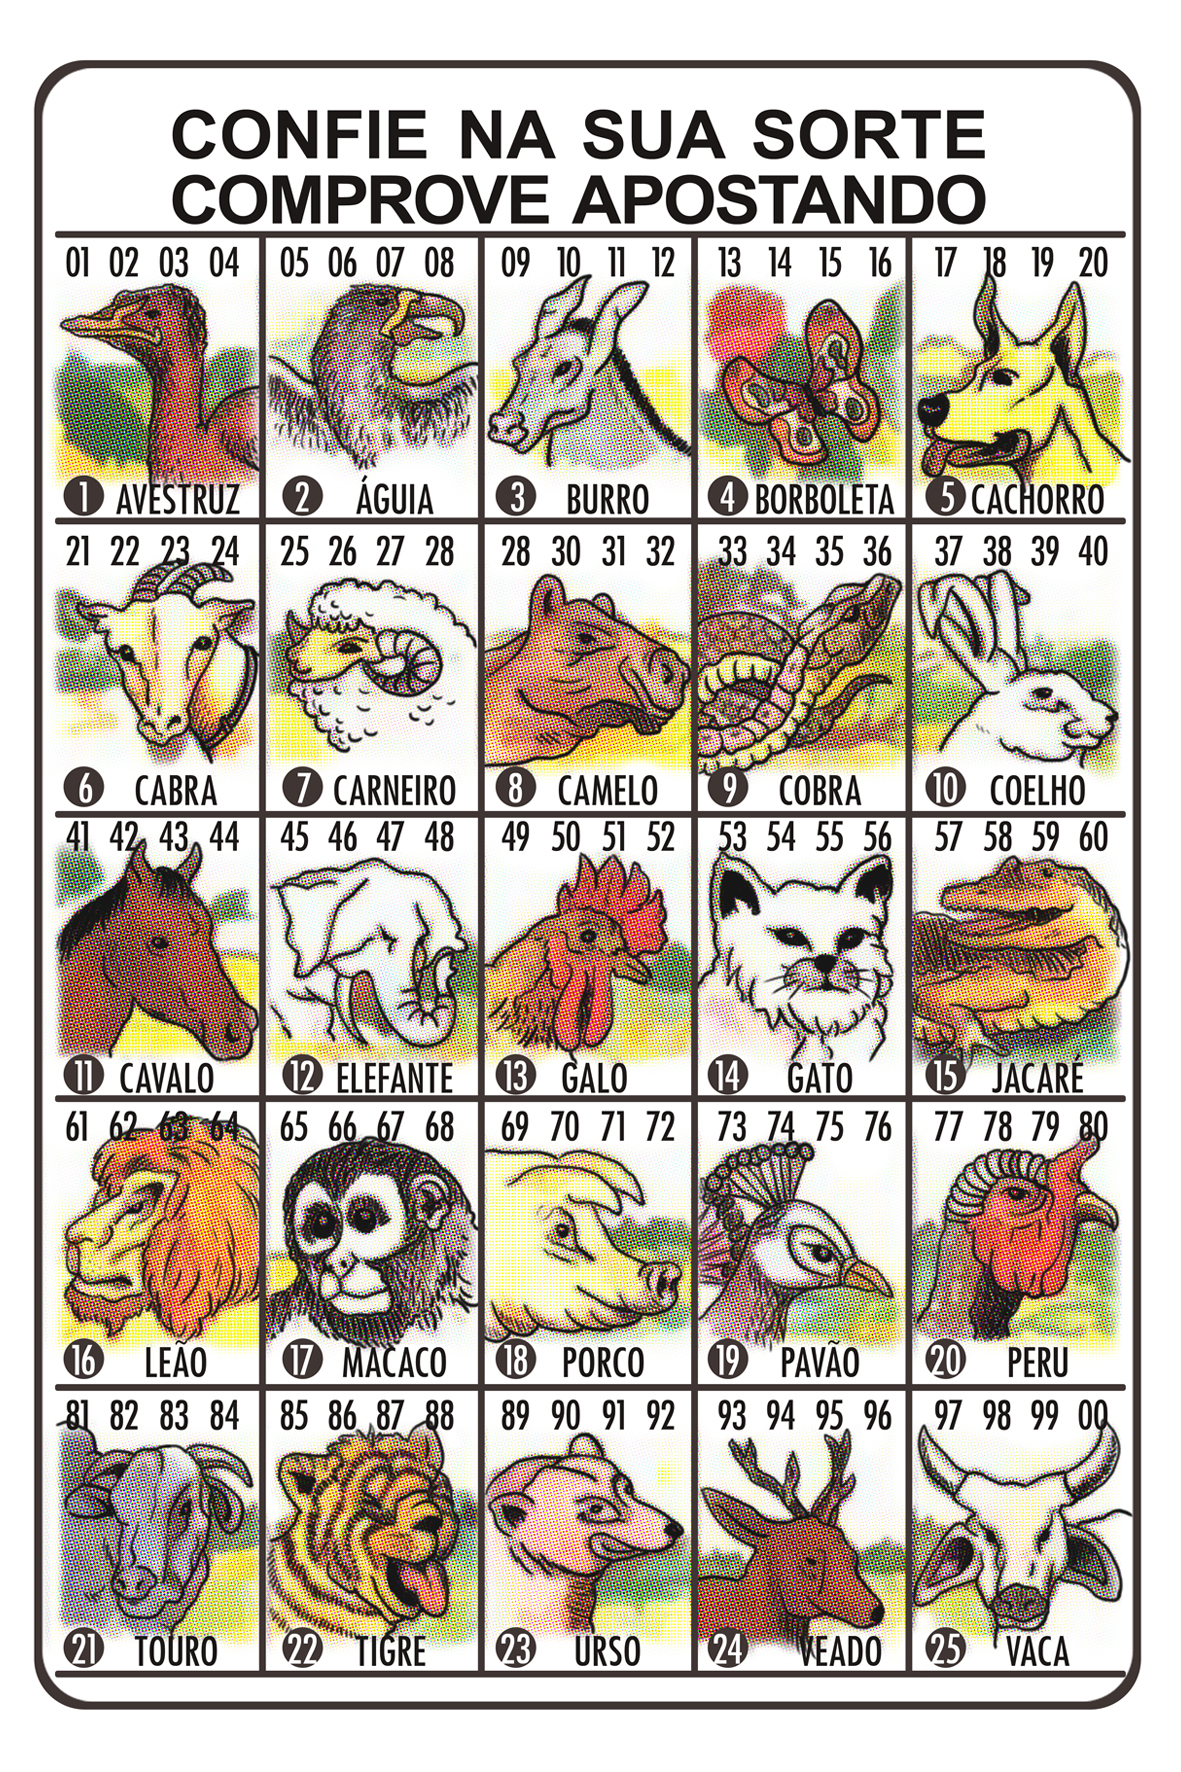 Traditional O Jogo do Bicho betting card, illustrated by Mariana Waechter and designed by Luiz Falcão.